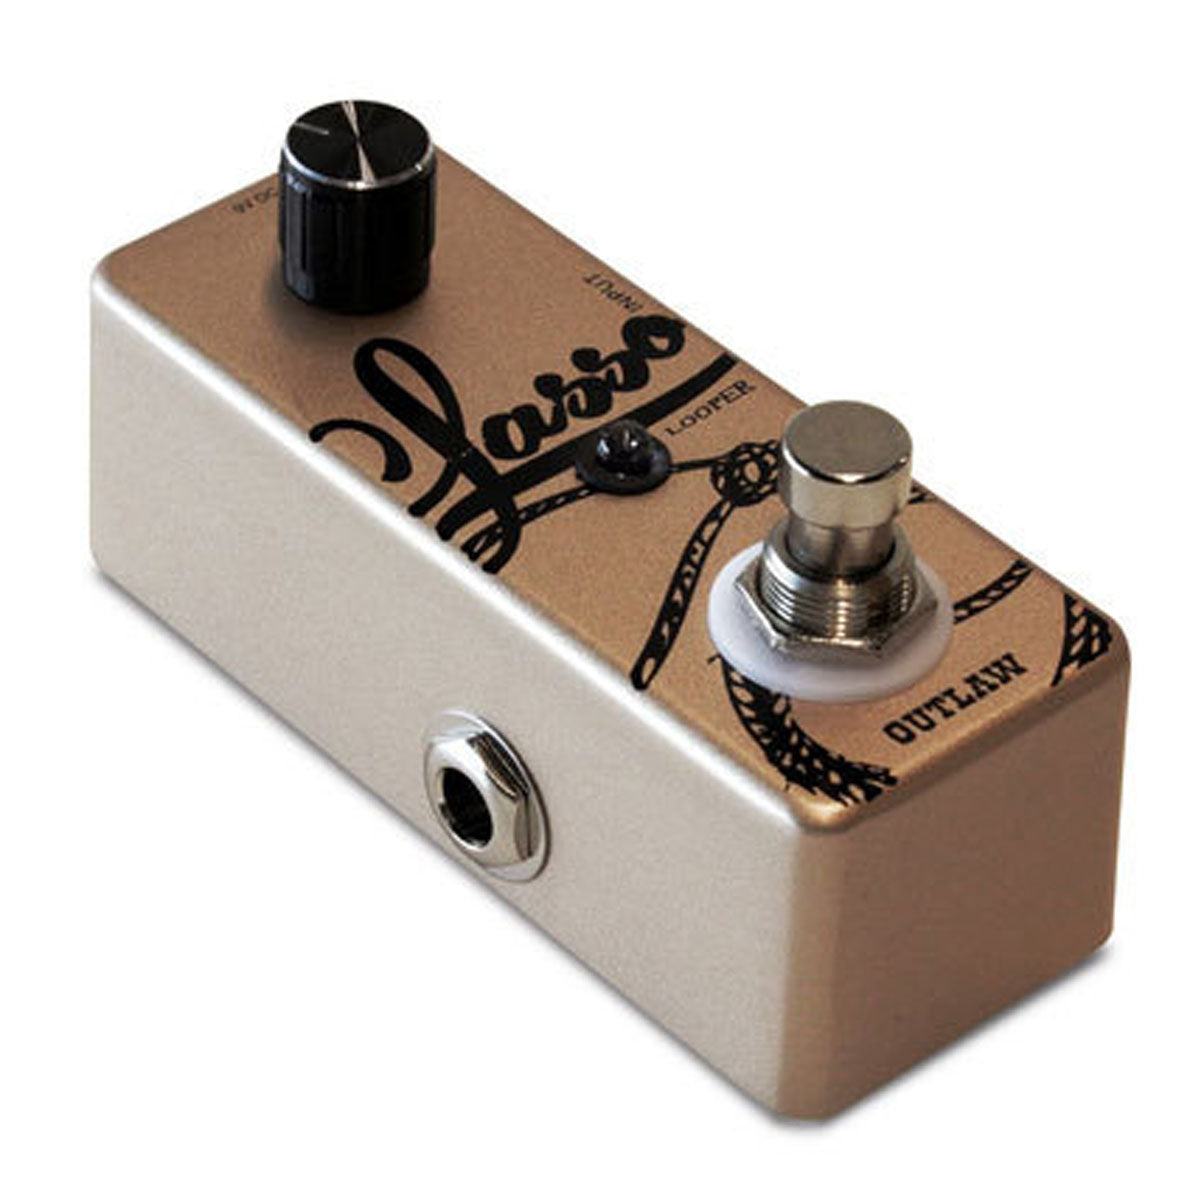 Outlaw Effects Lasso Looping Looper Pedal